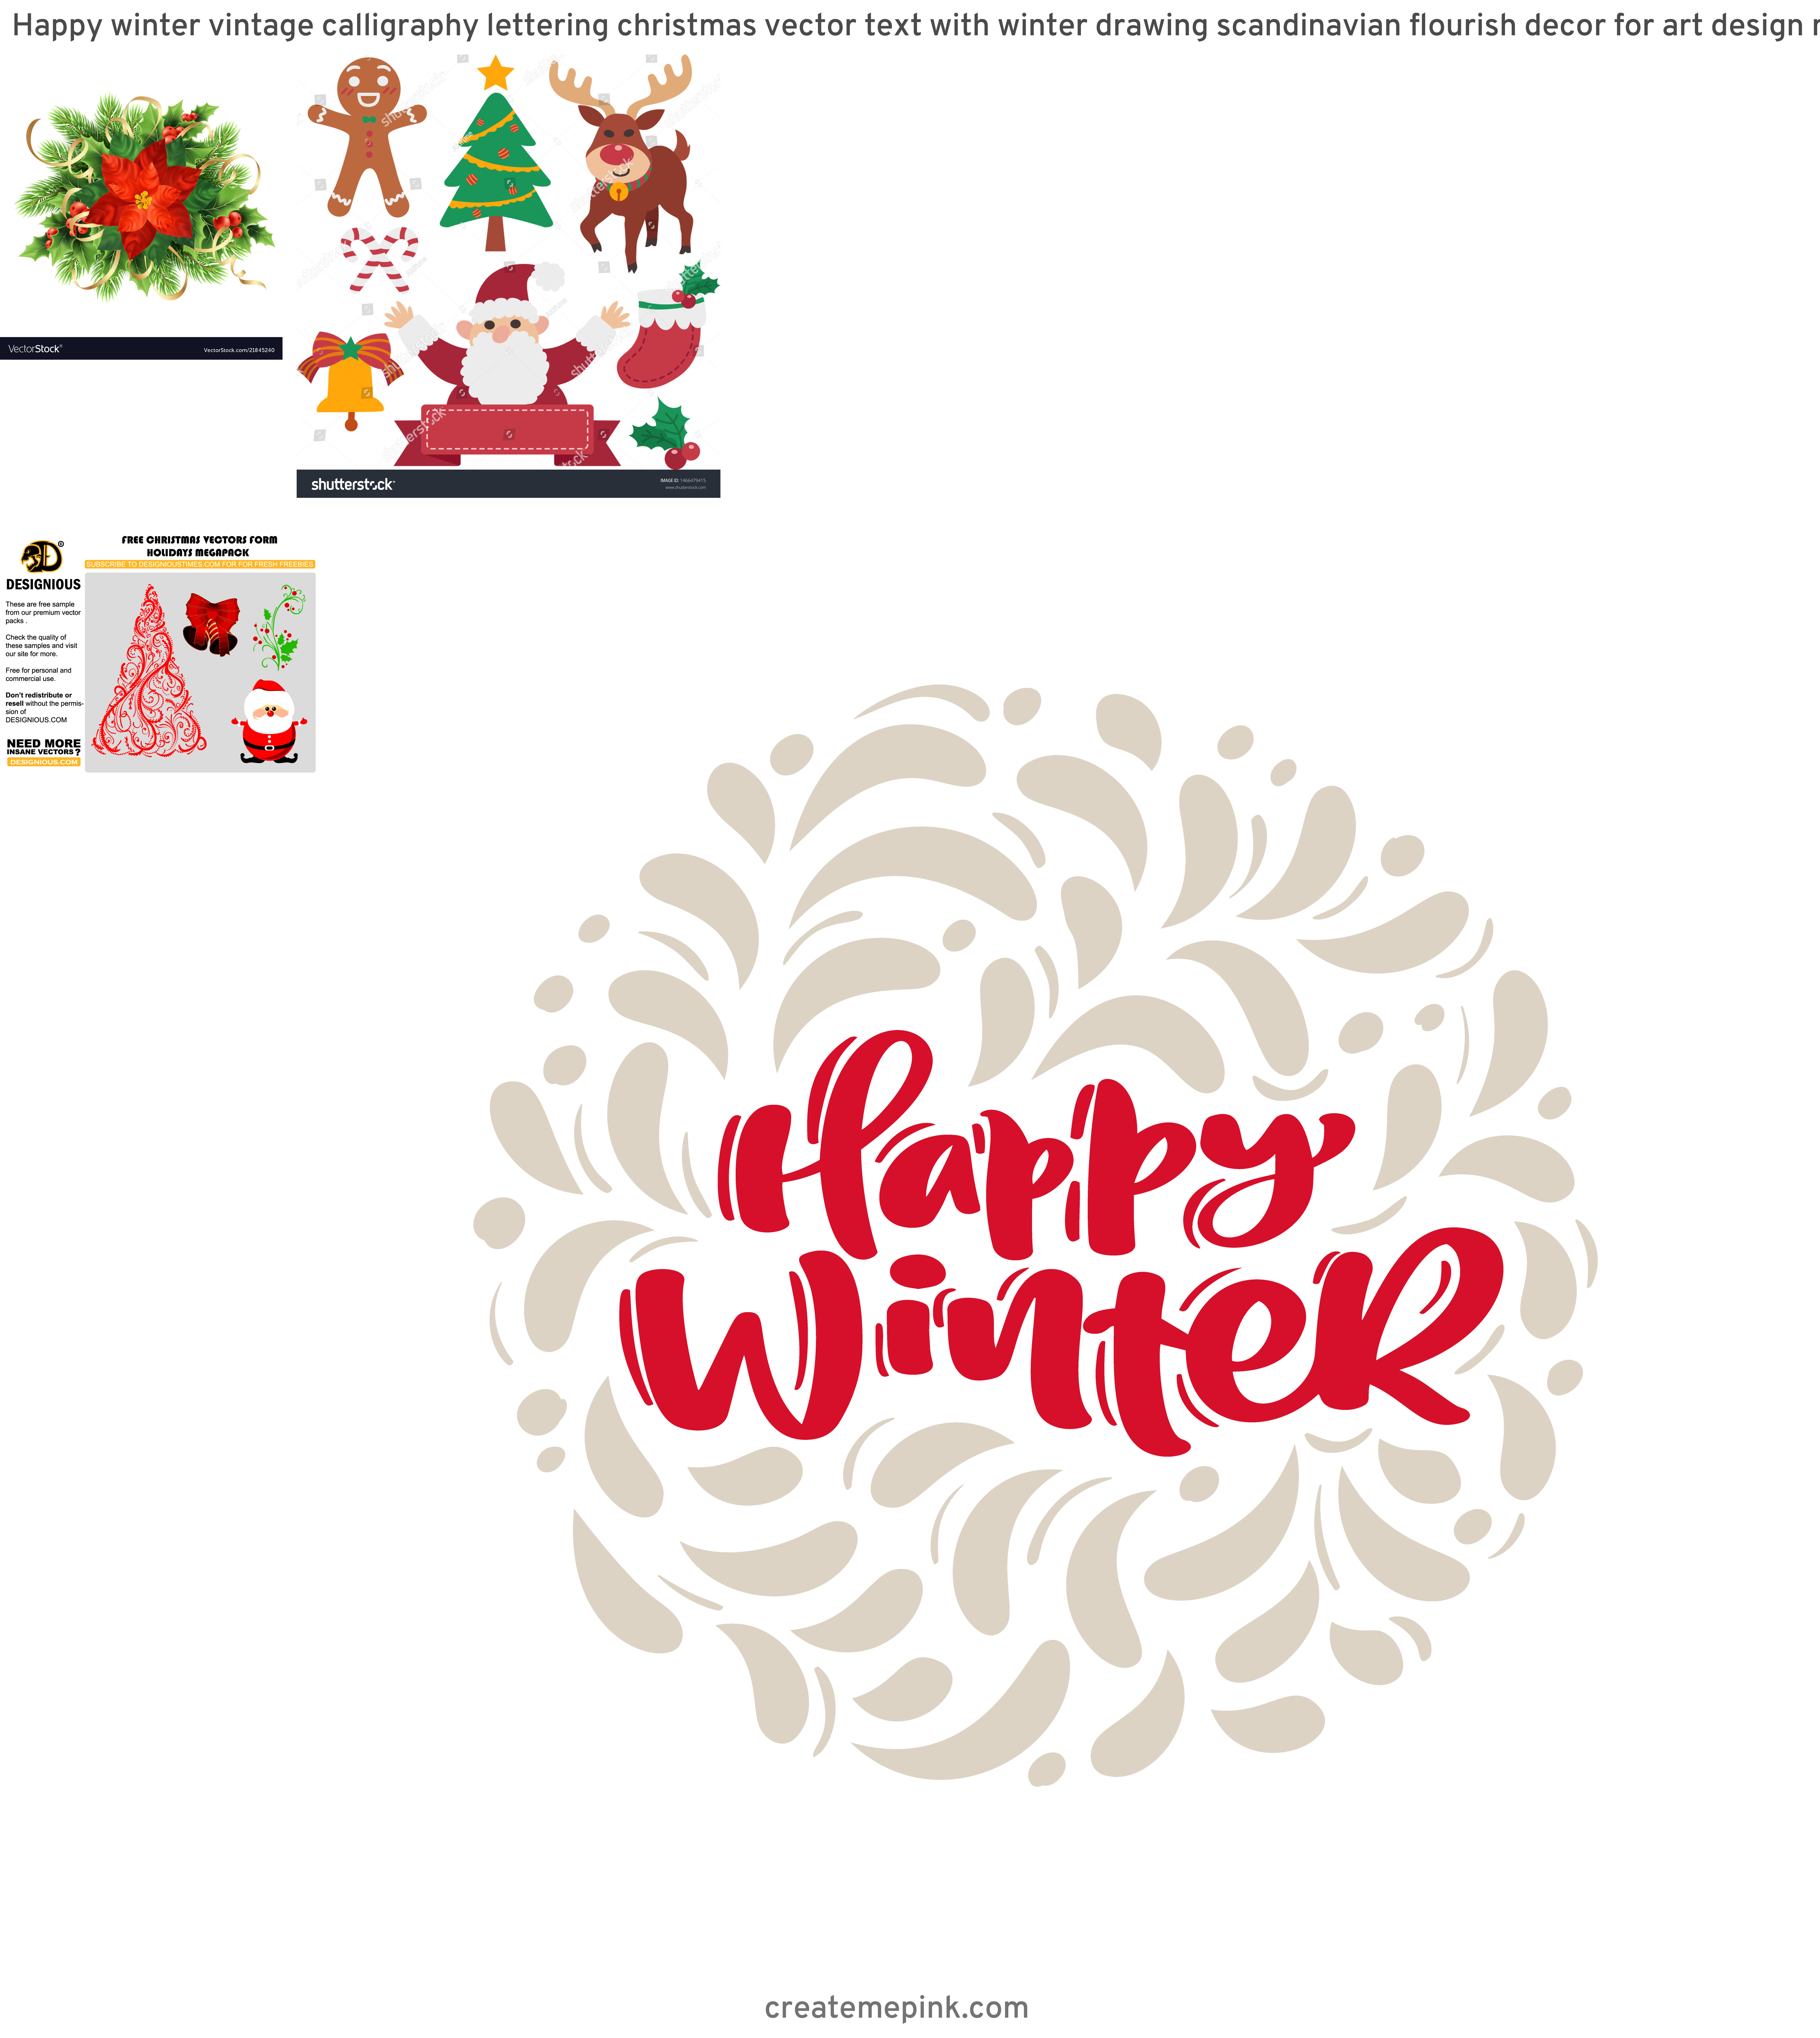 Christmas Vector Graphics Art: Happy Winter Vintage Calligraphy Lettering Christmas Vector Text With Winter Drawing Scandinavian Flourish Decor For Art Design Mockup Brochure Style Banner Idea Cover Booklet Print Flyer Poster